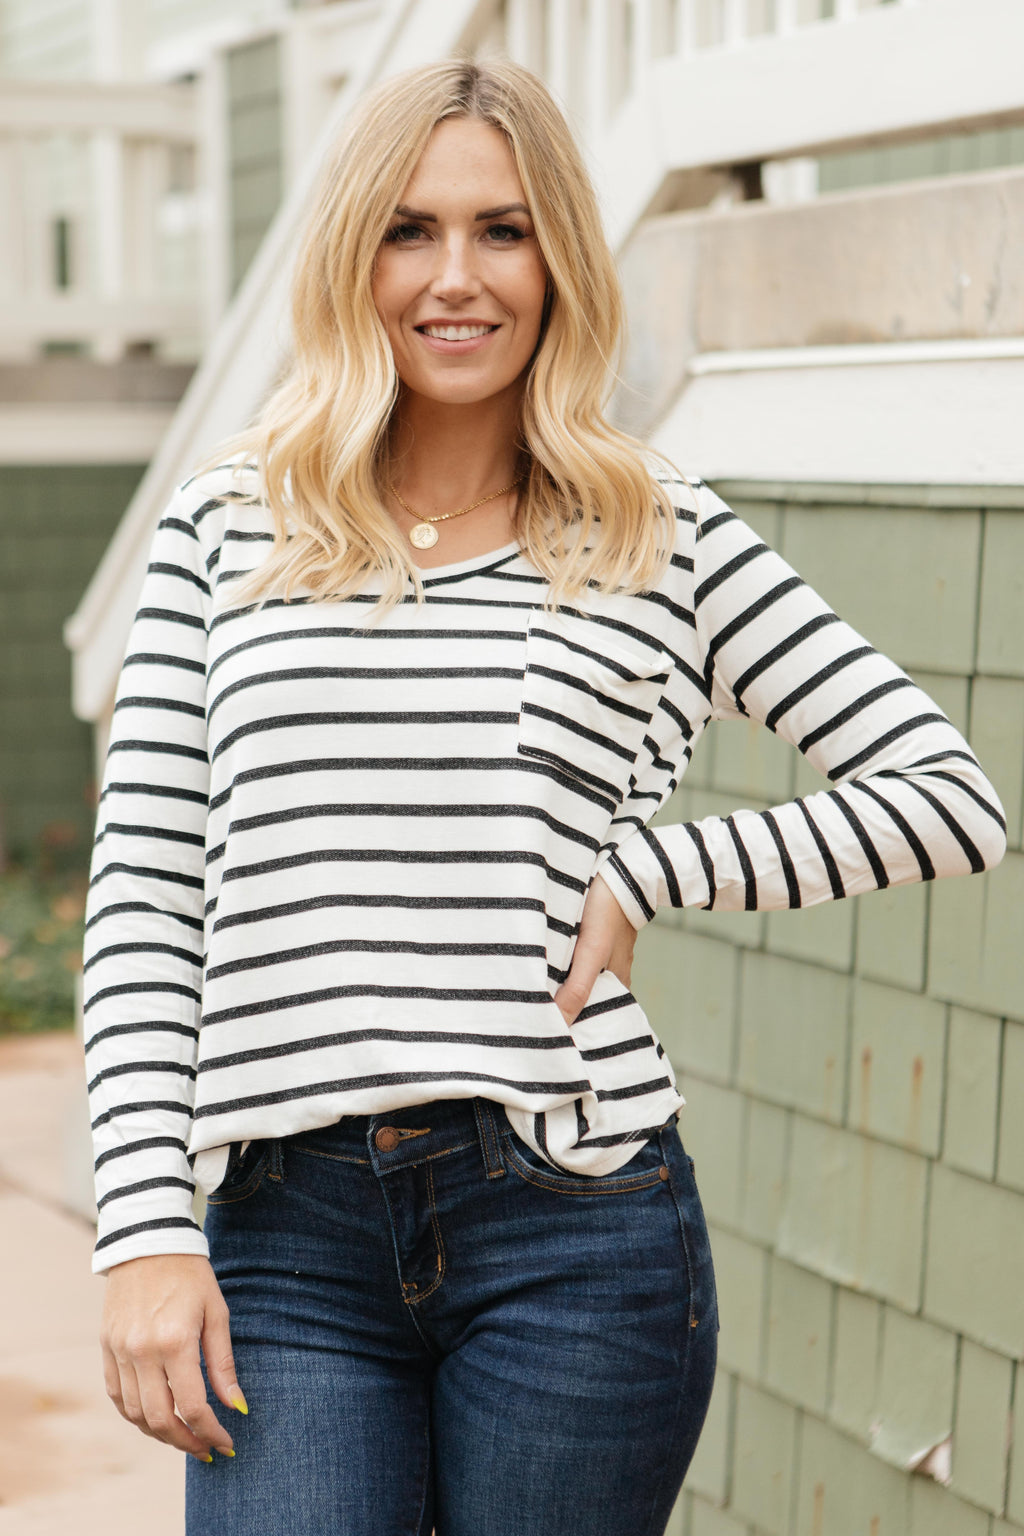 Basically Striped Long Sleeve Top in Ivory and Black-10-15-2020, 1XL, 2XL, 3XL, BFCM2020, Group A, Group B, Group C, Group D, Large, Made in the USA, Medium, Plus, Small, Tops, XL, XS-Womens Artisan USA American Made Clothing Accessories